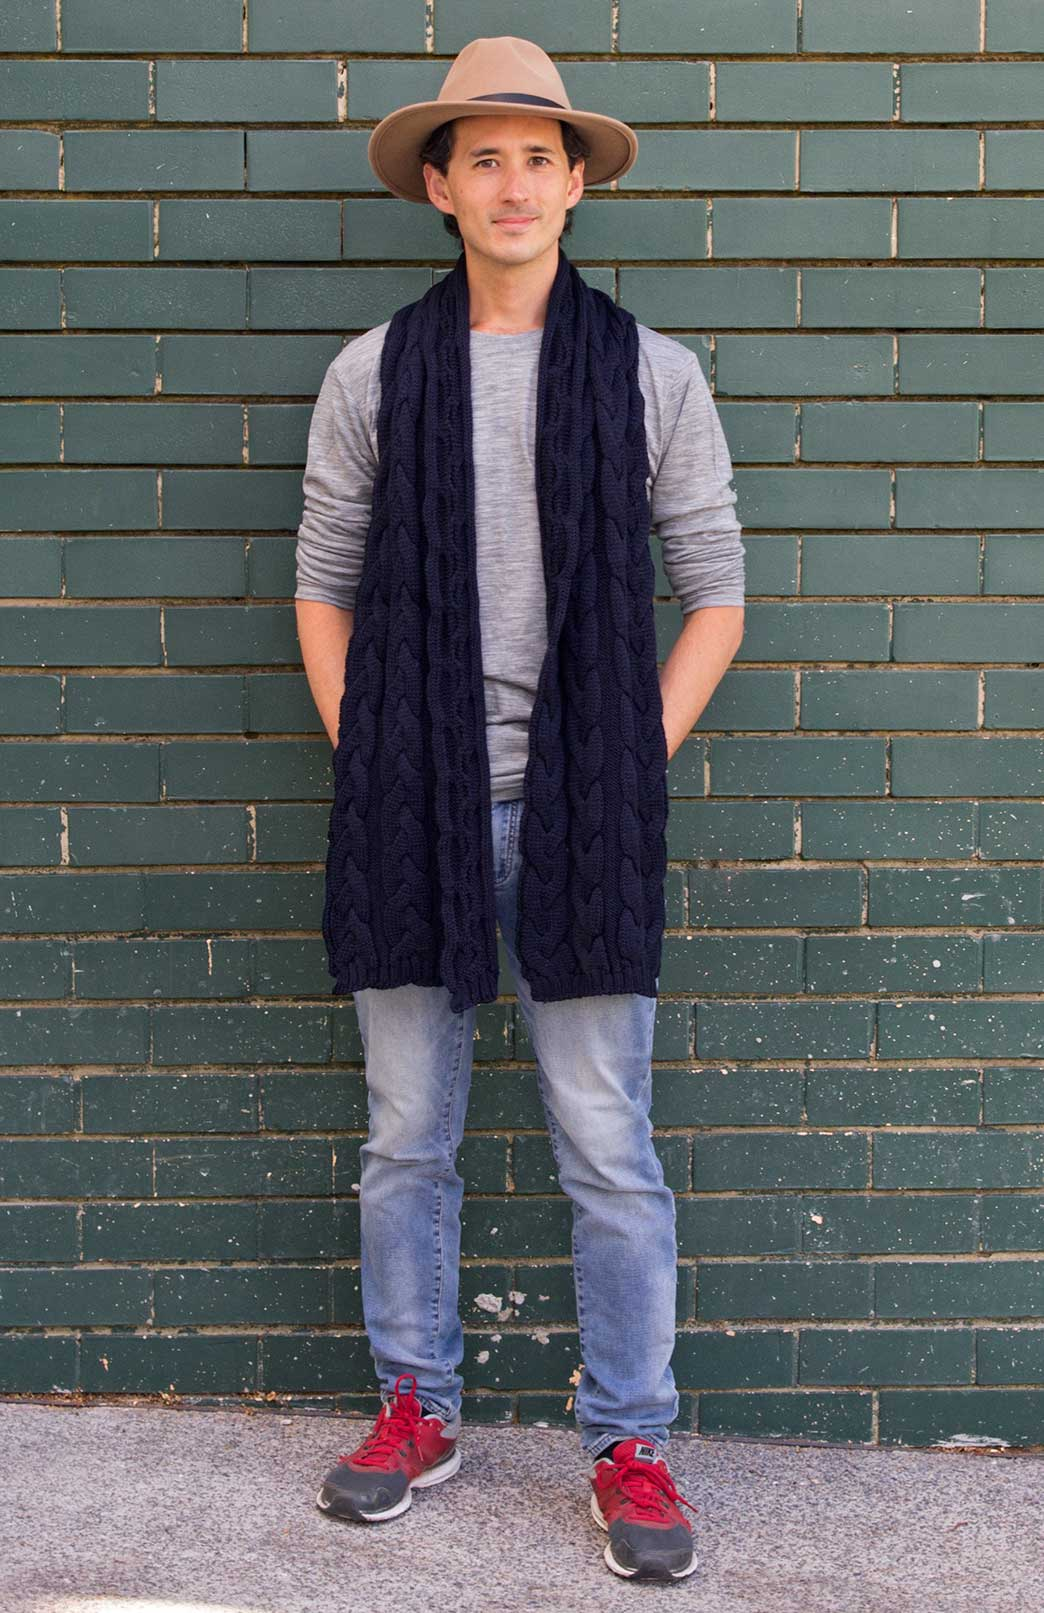 Men's Chunky Knit Cable Scarf - Men's Navy Blue Chunky Merino Wool Knit Scarf with Cable Detailing - Smitten Merino Tasmania Australia